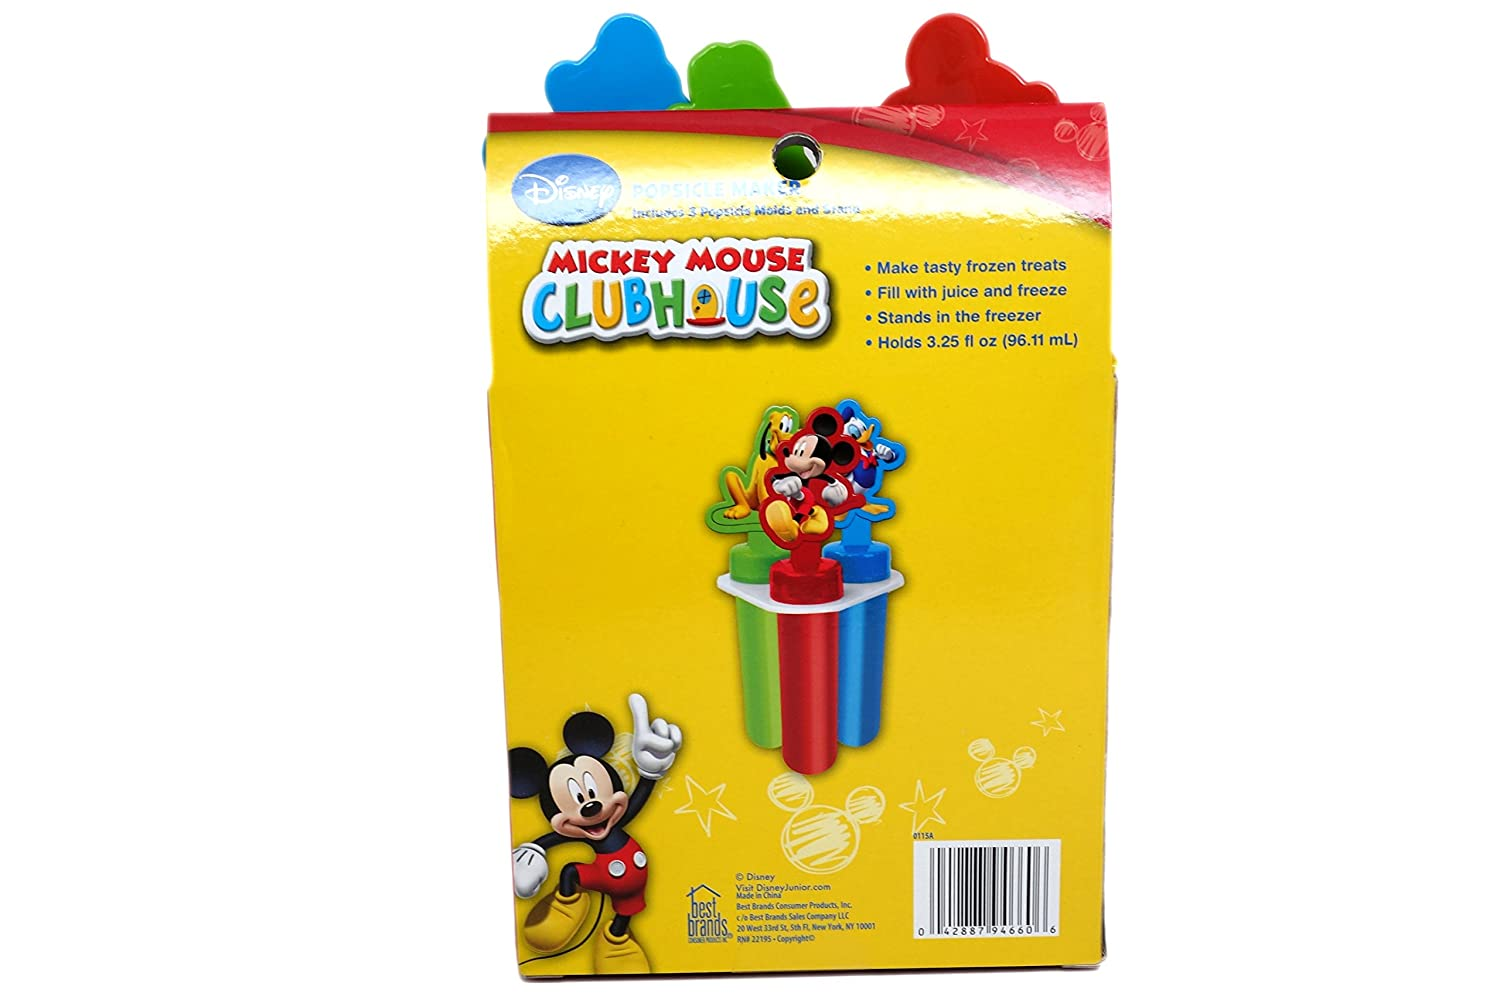 6 Popsicle Molds in Total Styles Vary Disney Popsicle Maker Molds 2-Pack